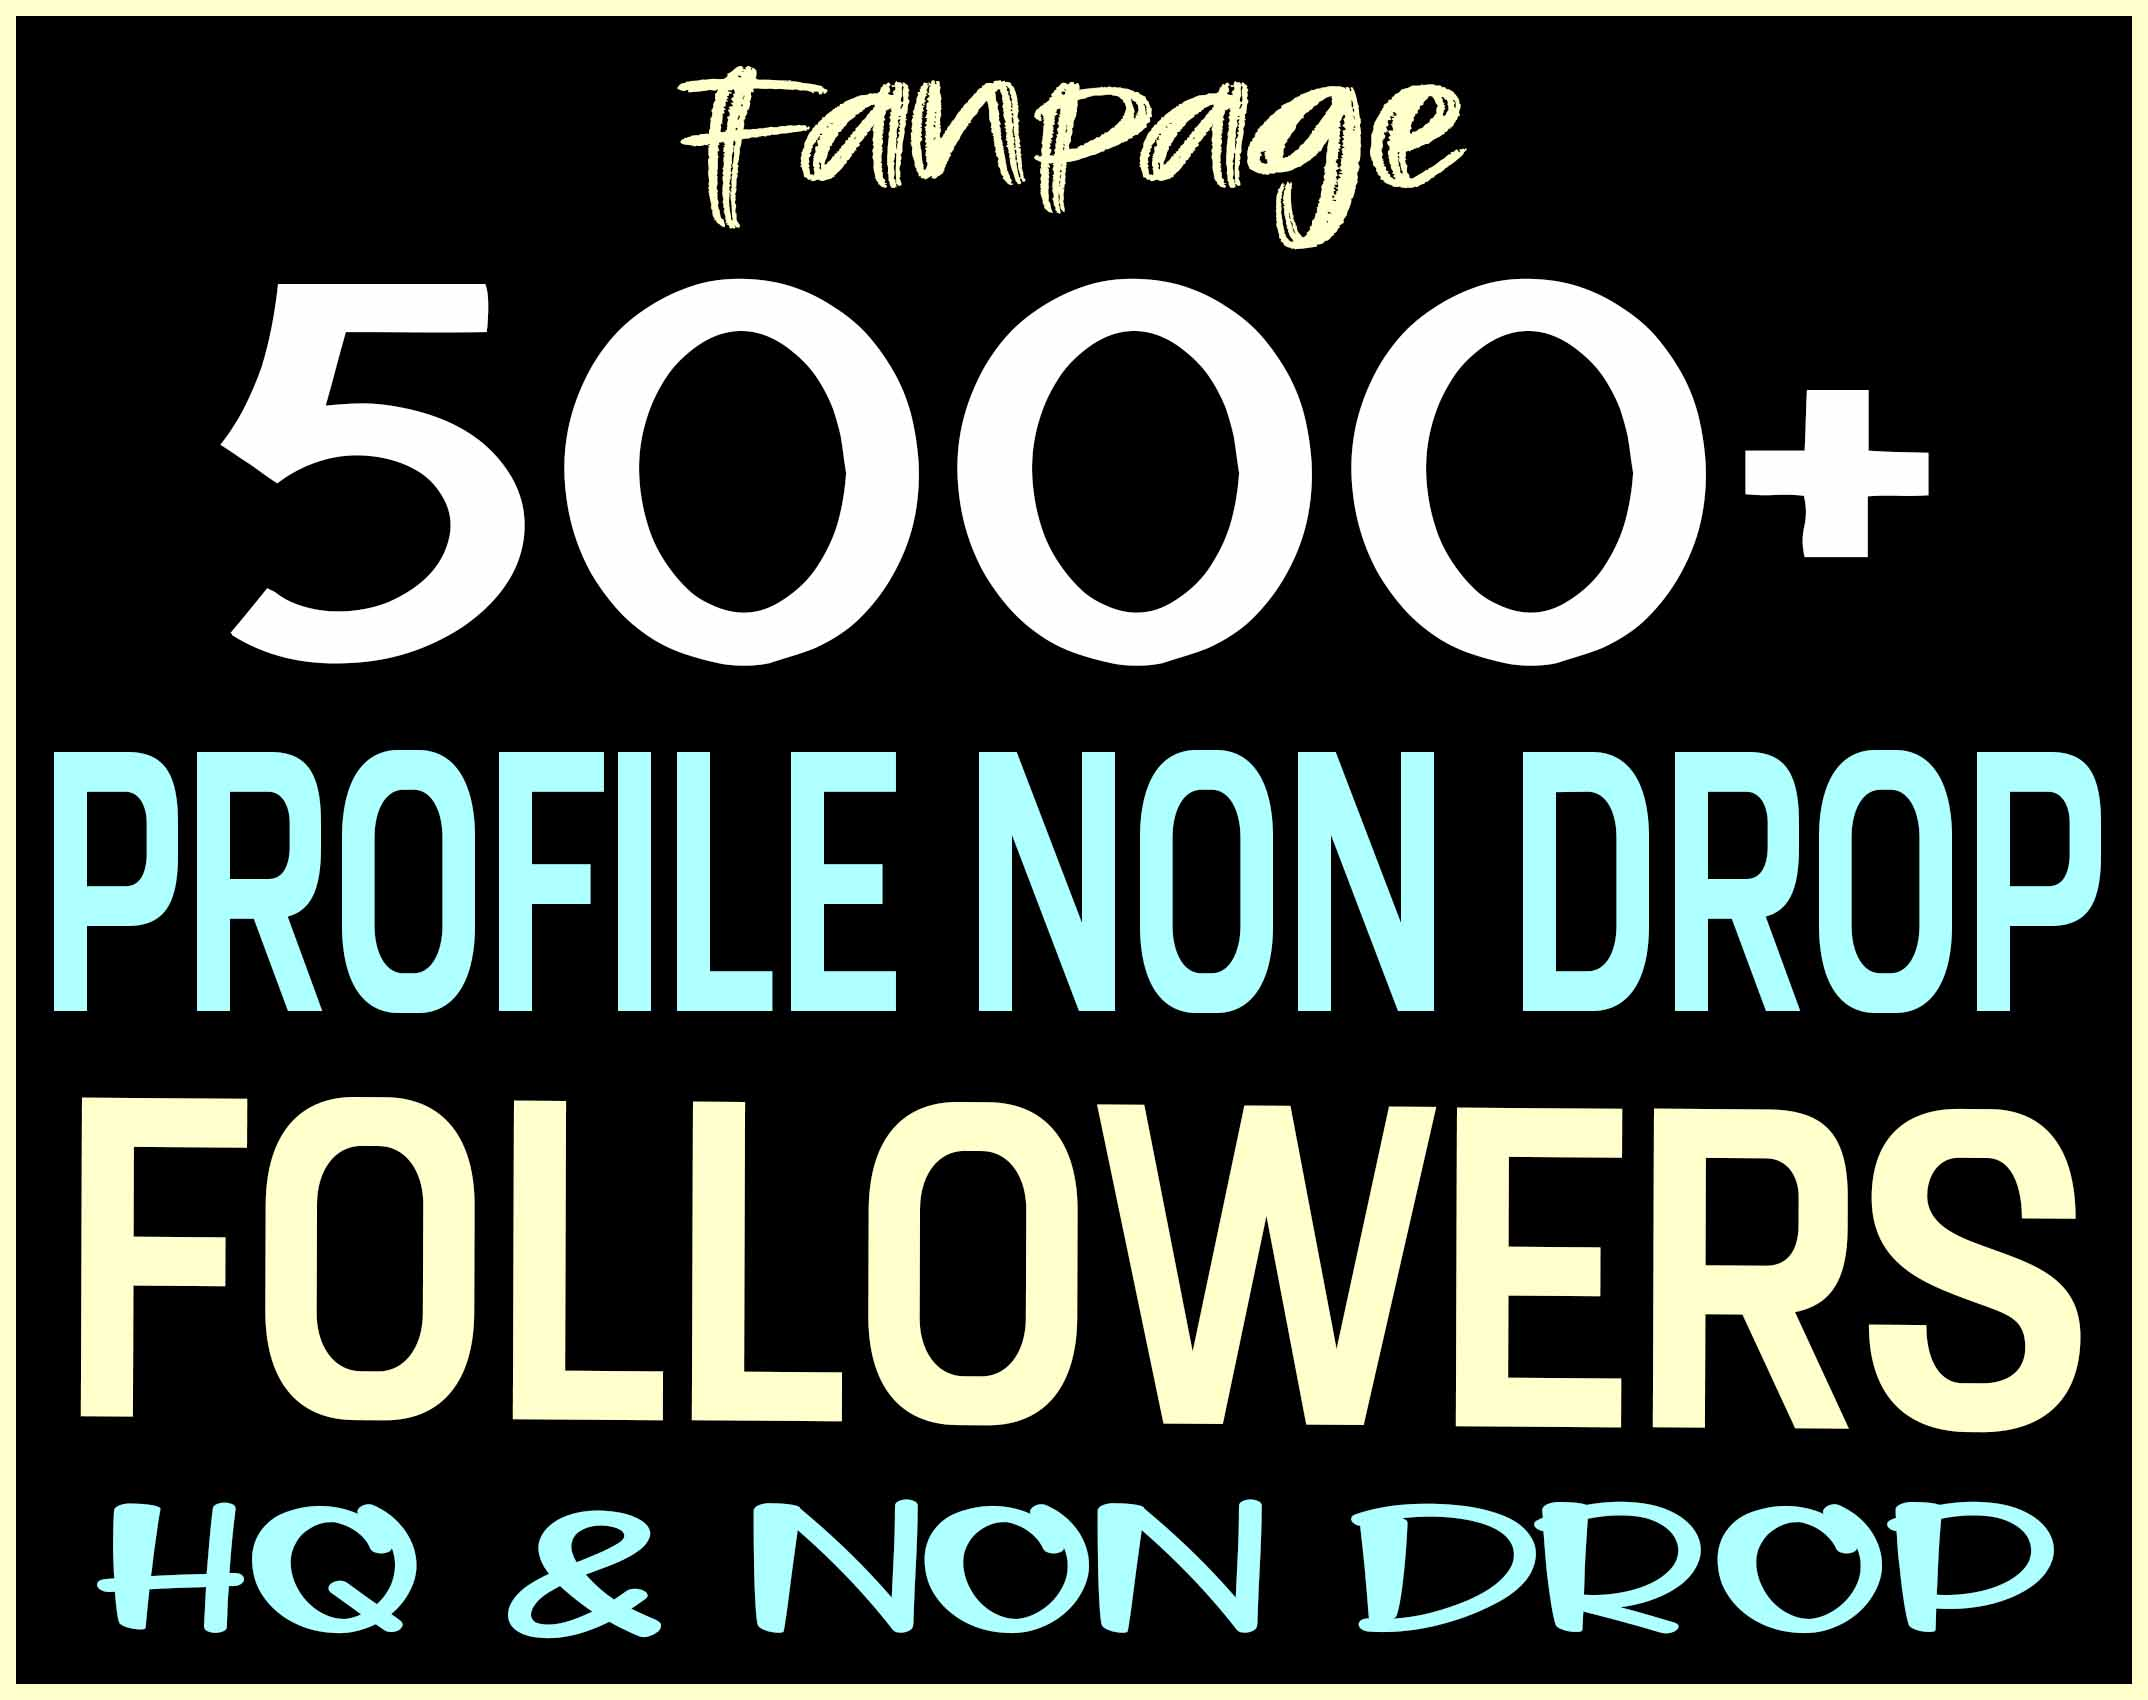 Add 5000+ Profile Followers Non Drop & High Quality - Instantly